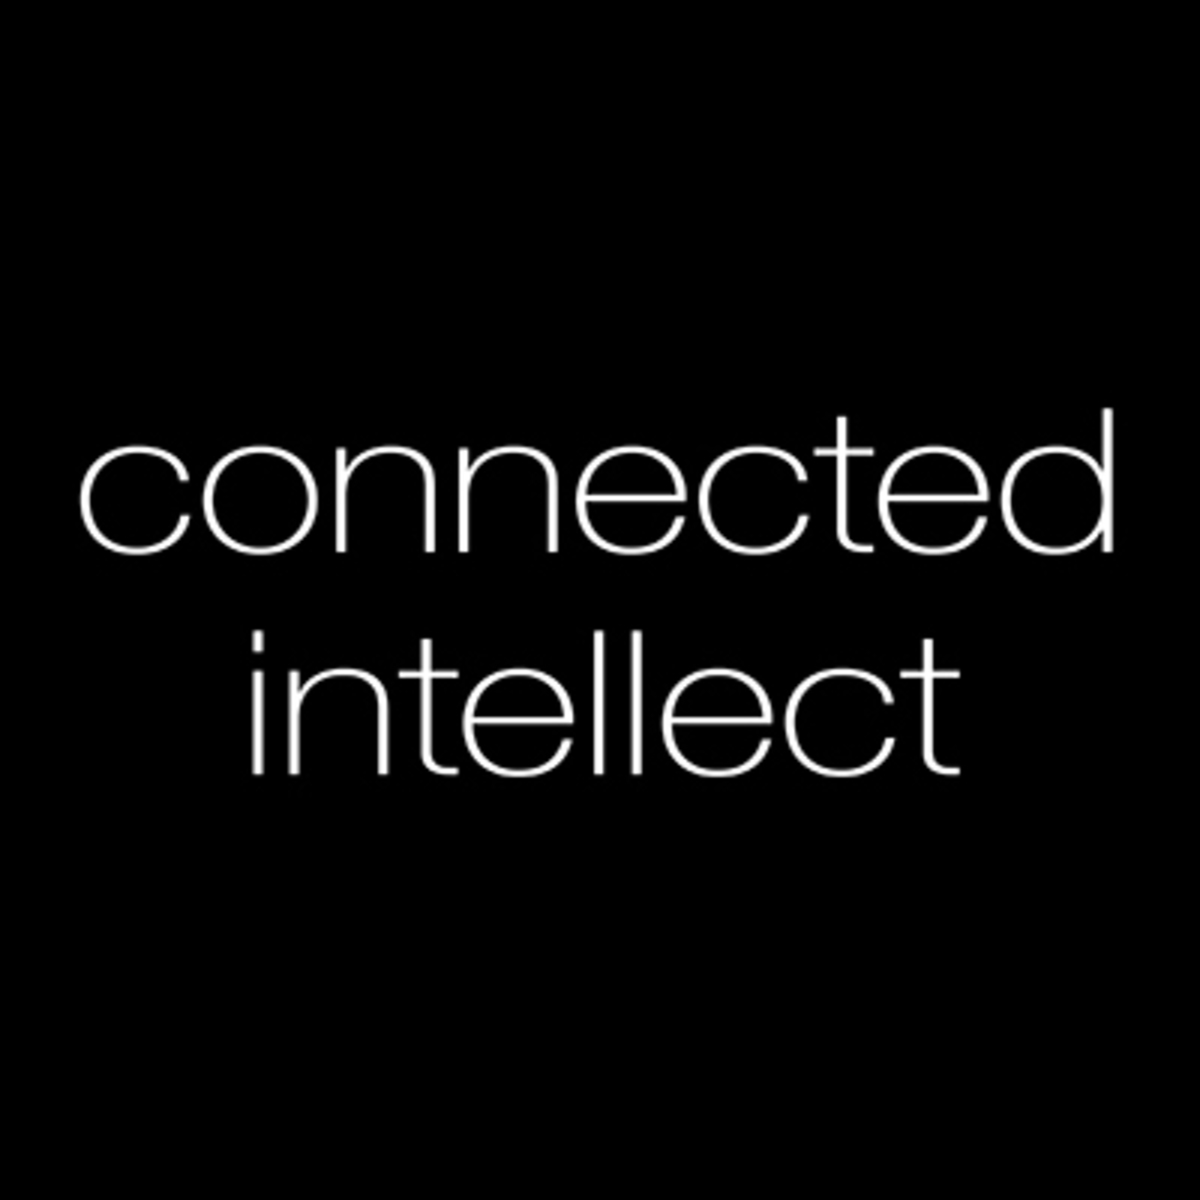 Connected Intellect